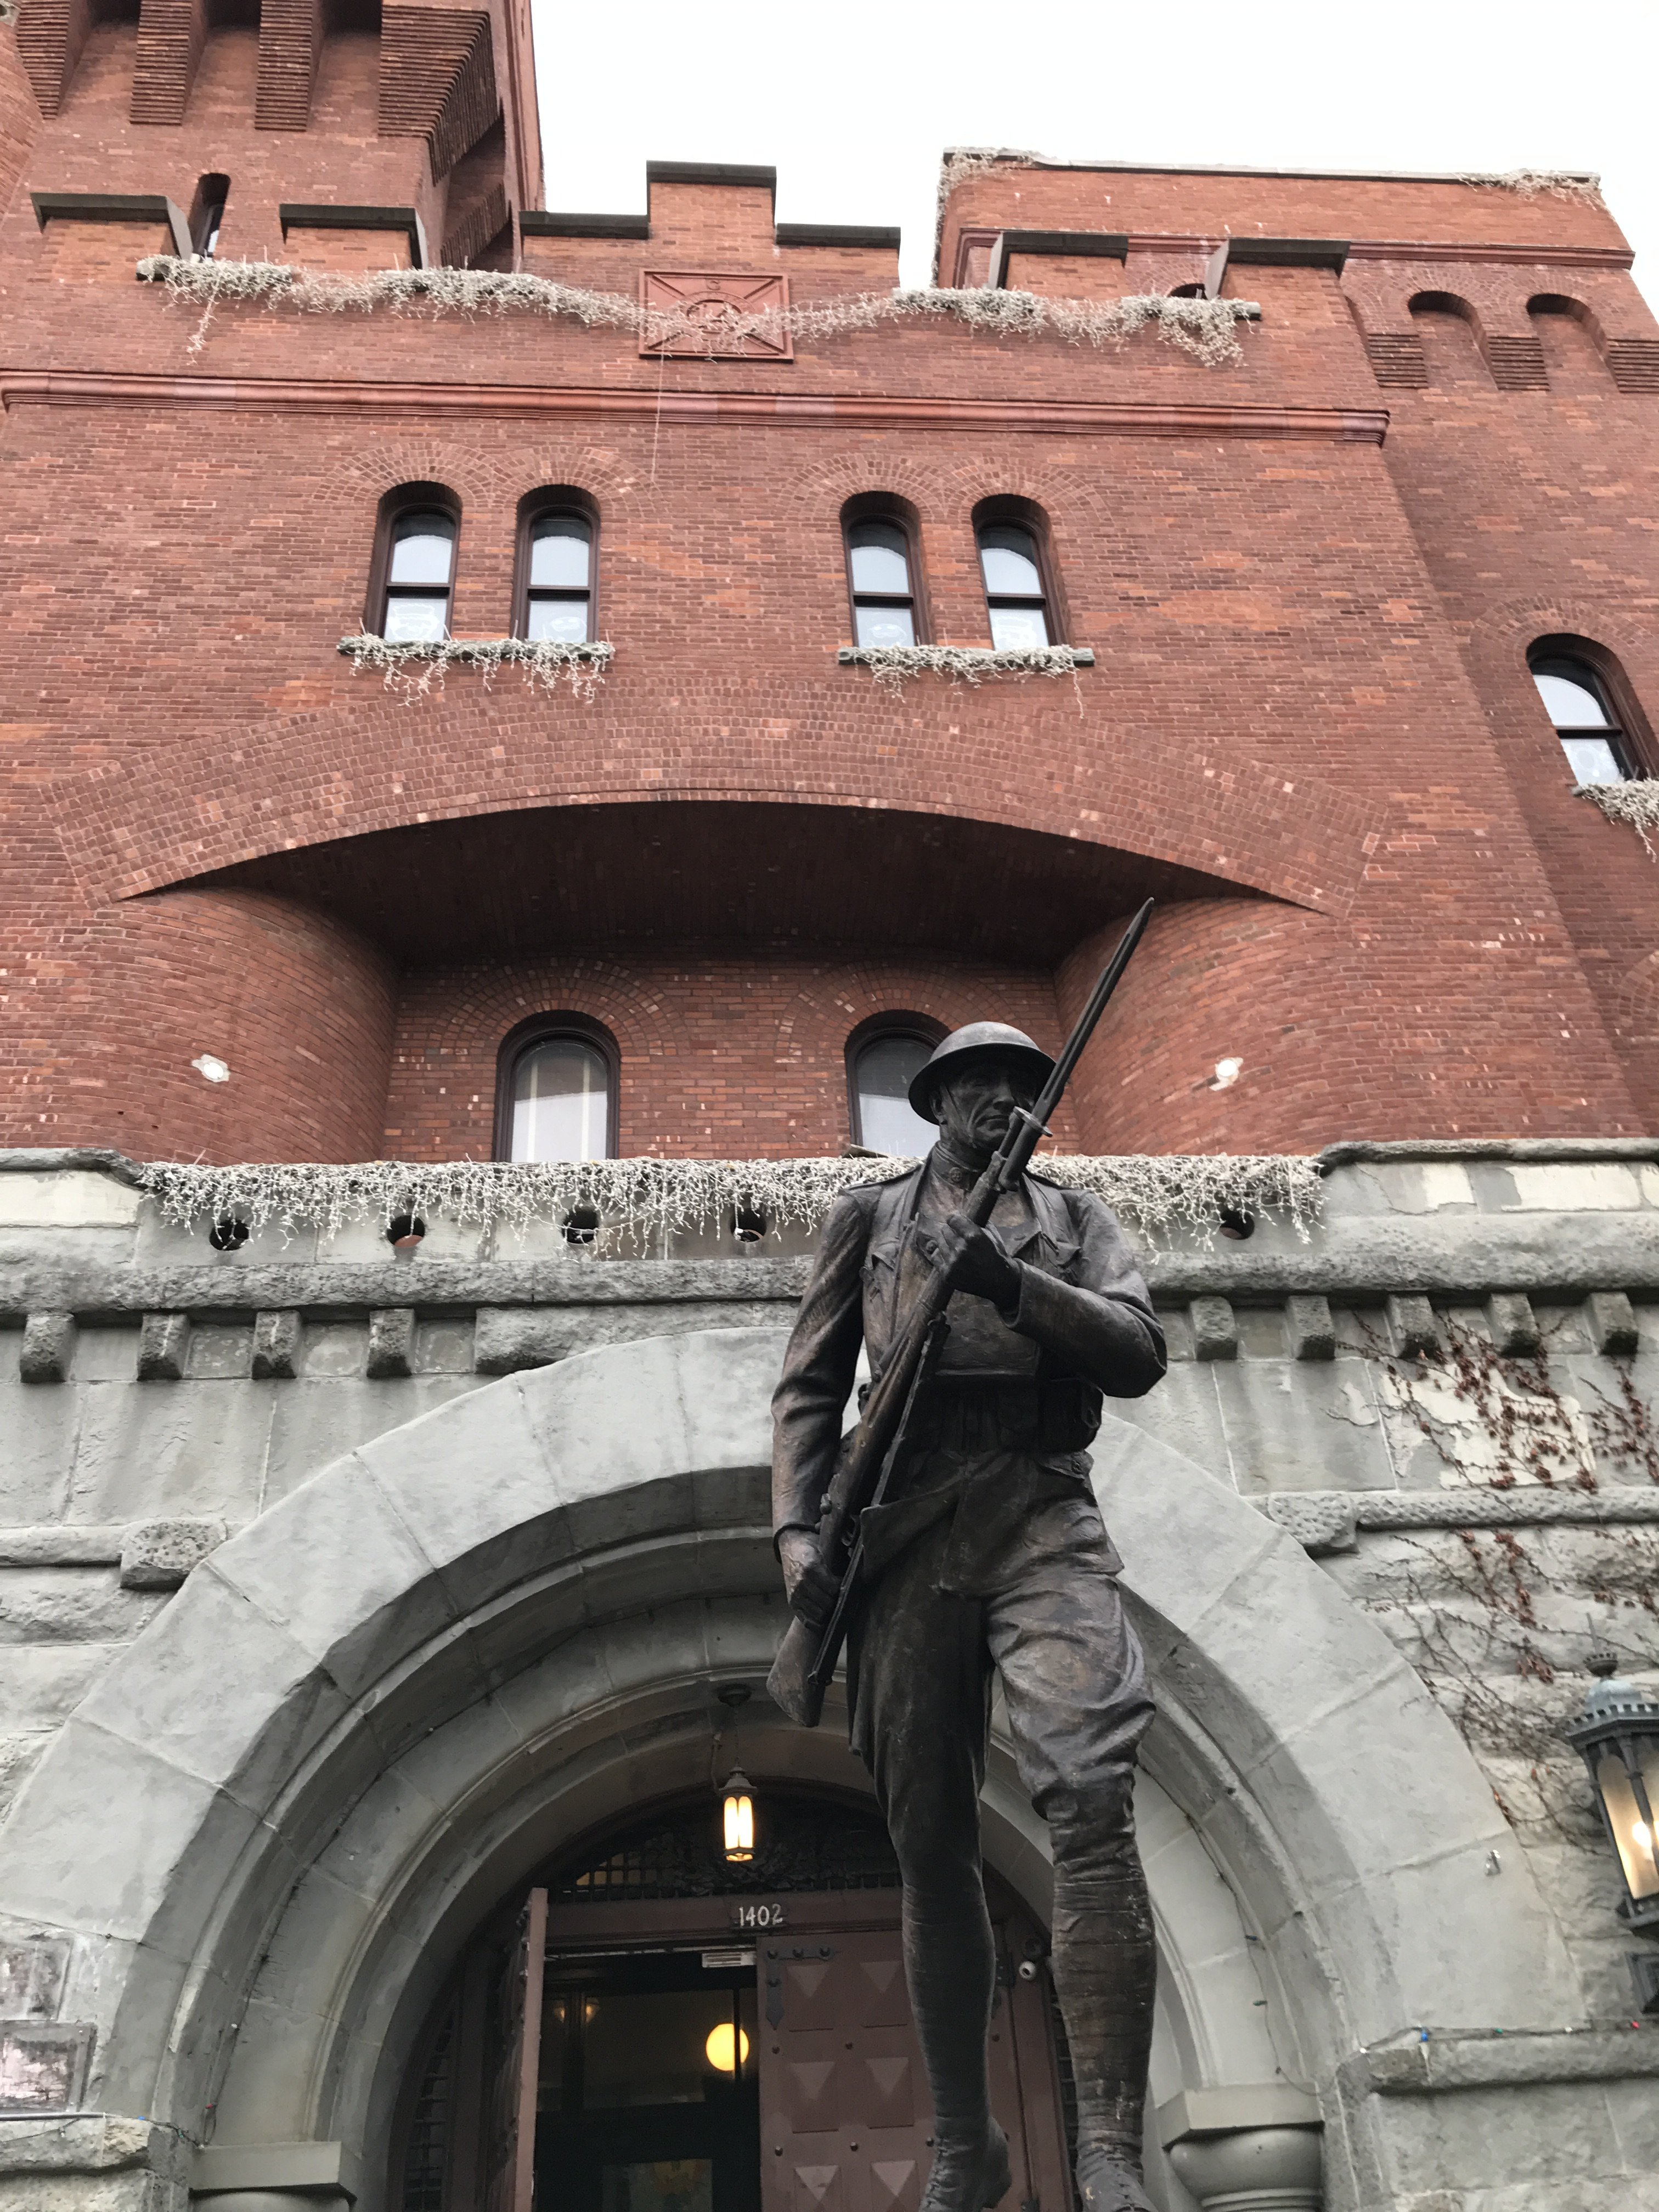 Another front shot of statue, with exterior of building behind the statue. The building behind is the original armory building which has been converted into a community space, museum and YMCA